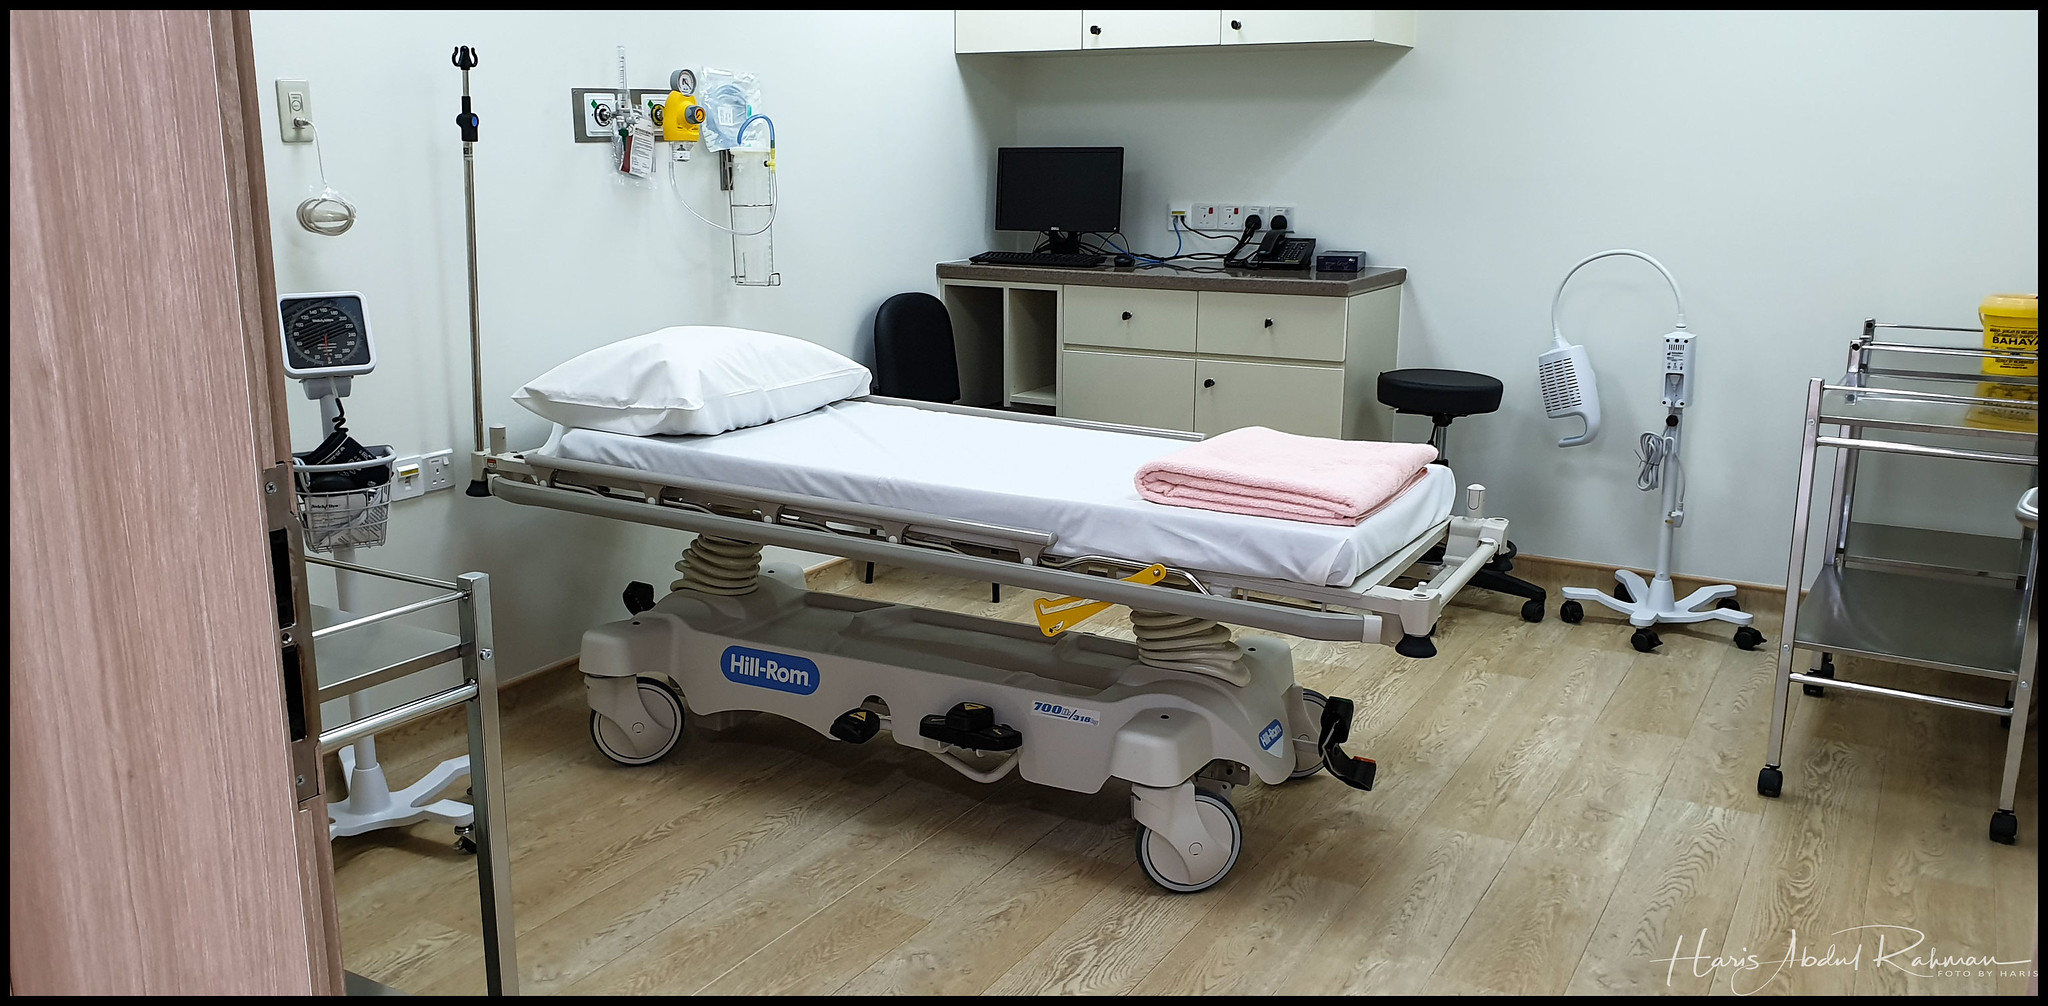 One of the treatment rooms